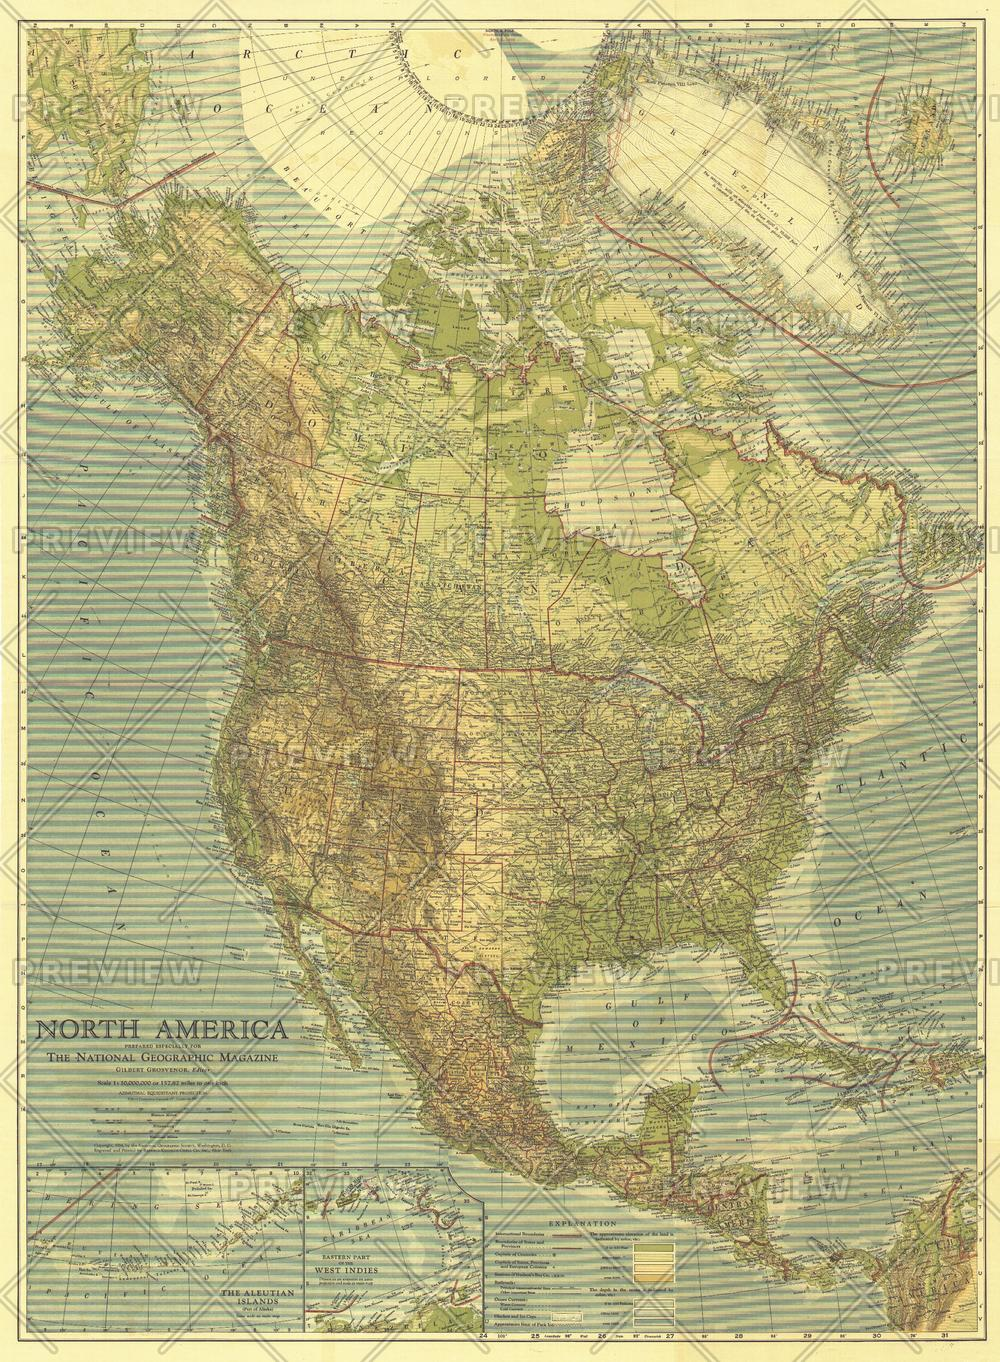 North America - Published 1924